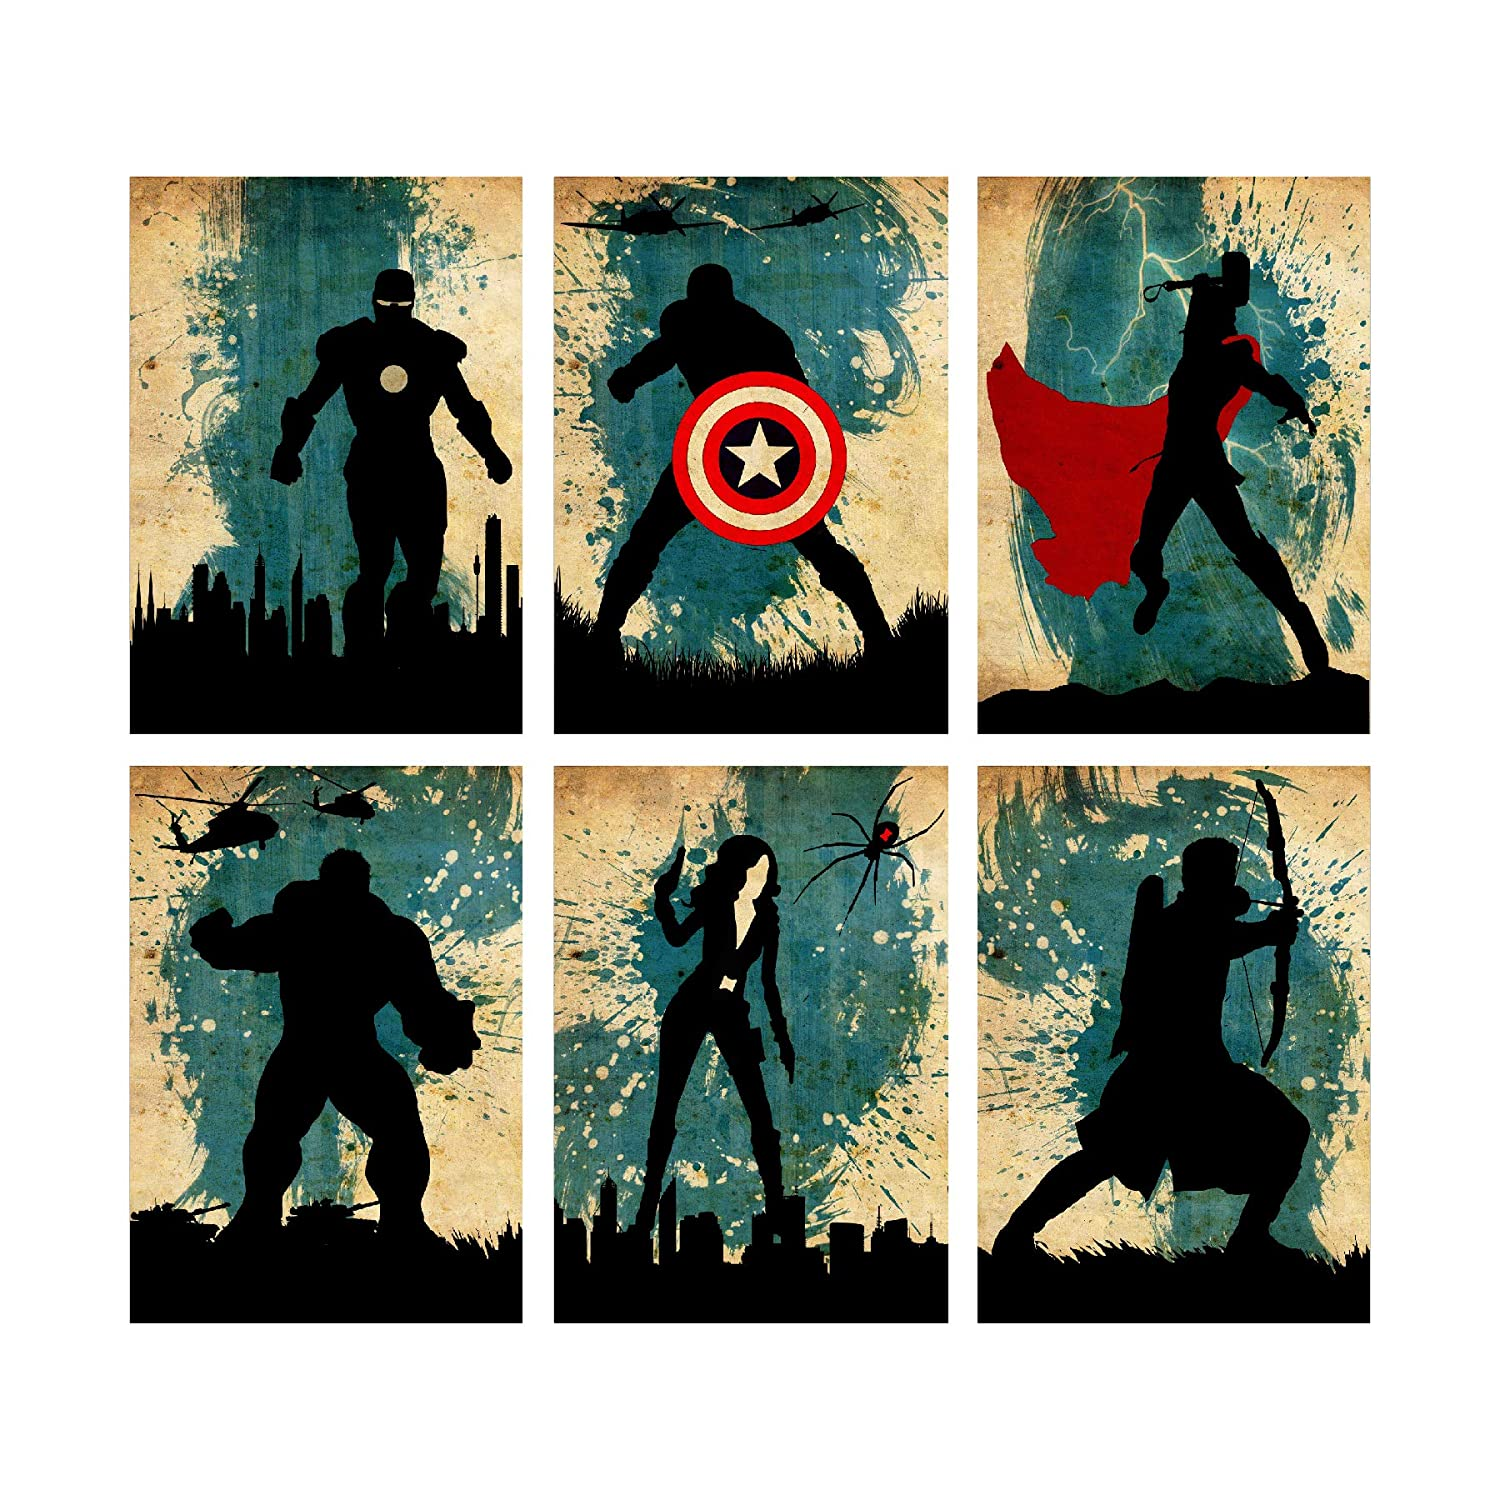 The Avengers Minimalist Poster Set 6 Minimalist Watercolor Vintage Poster Marvel Super heroes Movie Print Captain America Iron Man Thor Hulk Black Widow Hawkeye Artwork Wall Art Home Decor